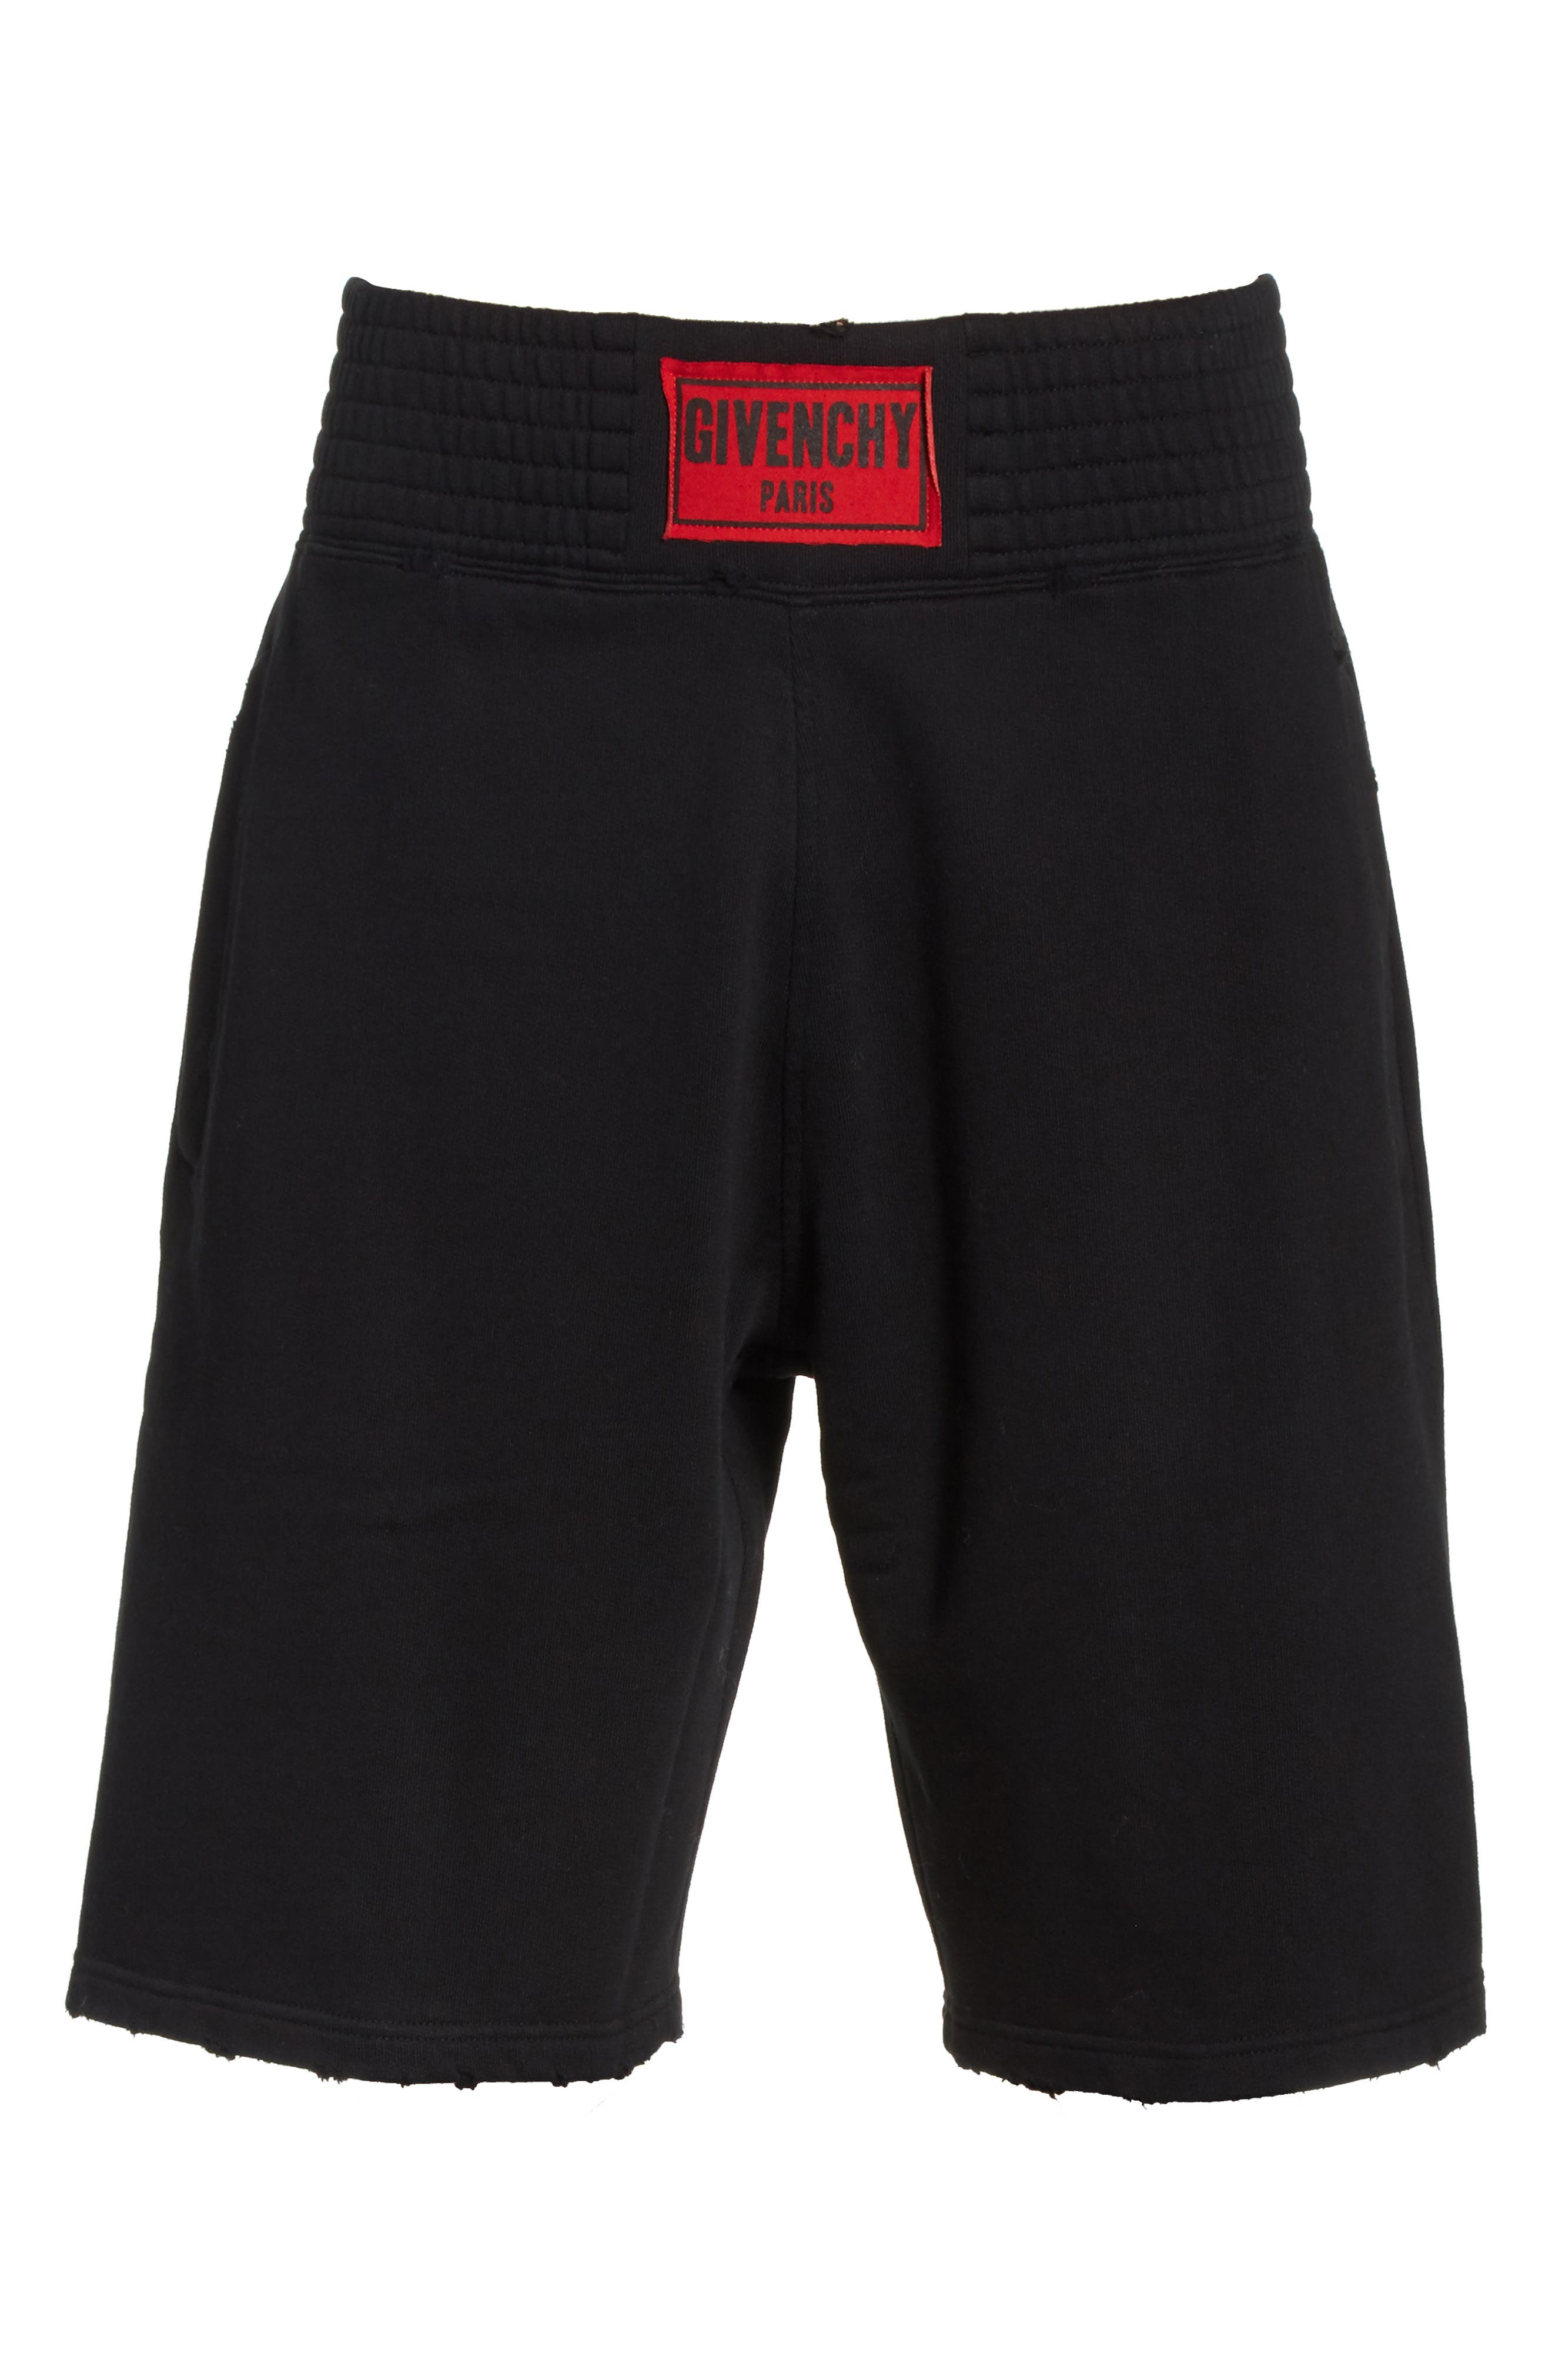 Knit Boxing Shorts,                             Alternate thumbnail 6, color,                             Black